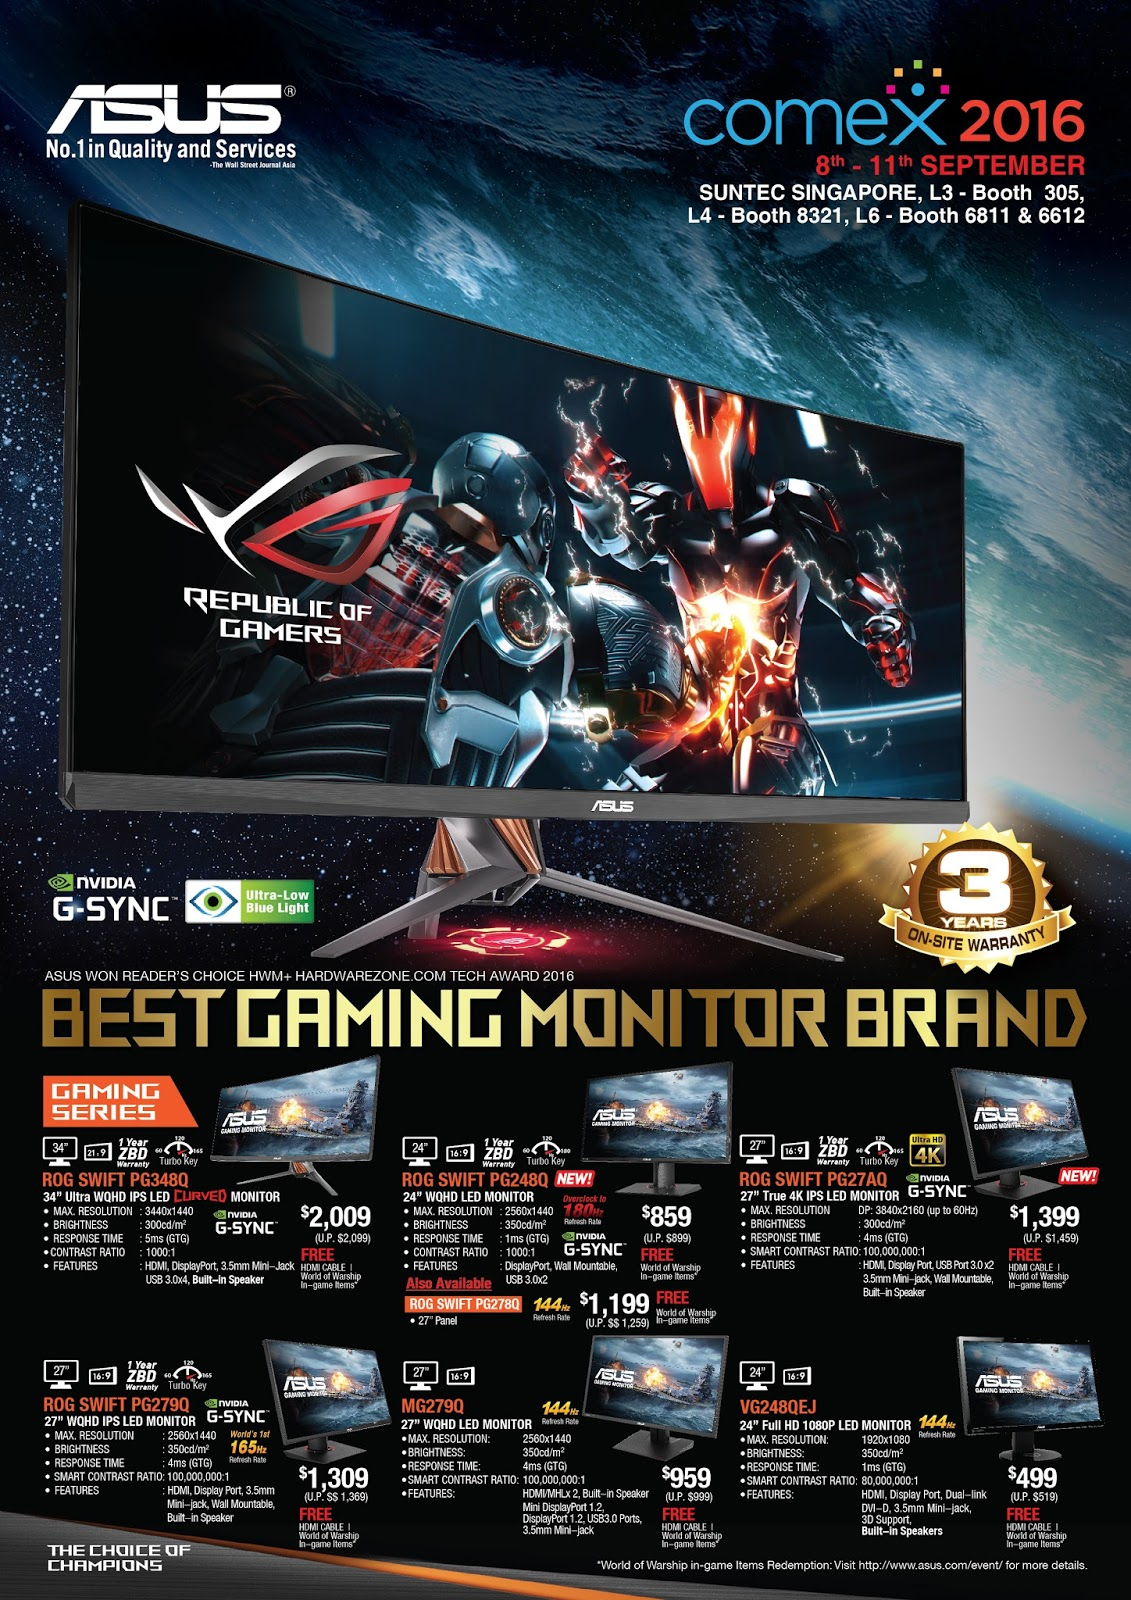 ASUS COMEX 2016 Product Brochures, Pricelist and Flyers